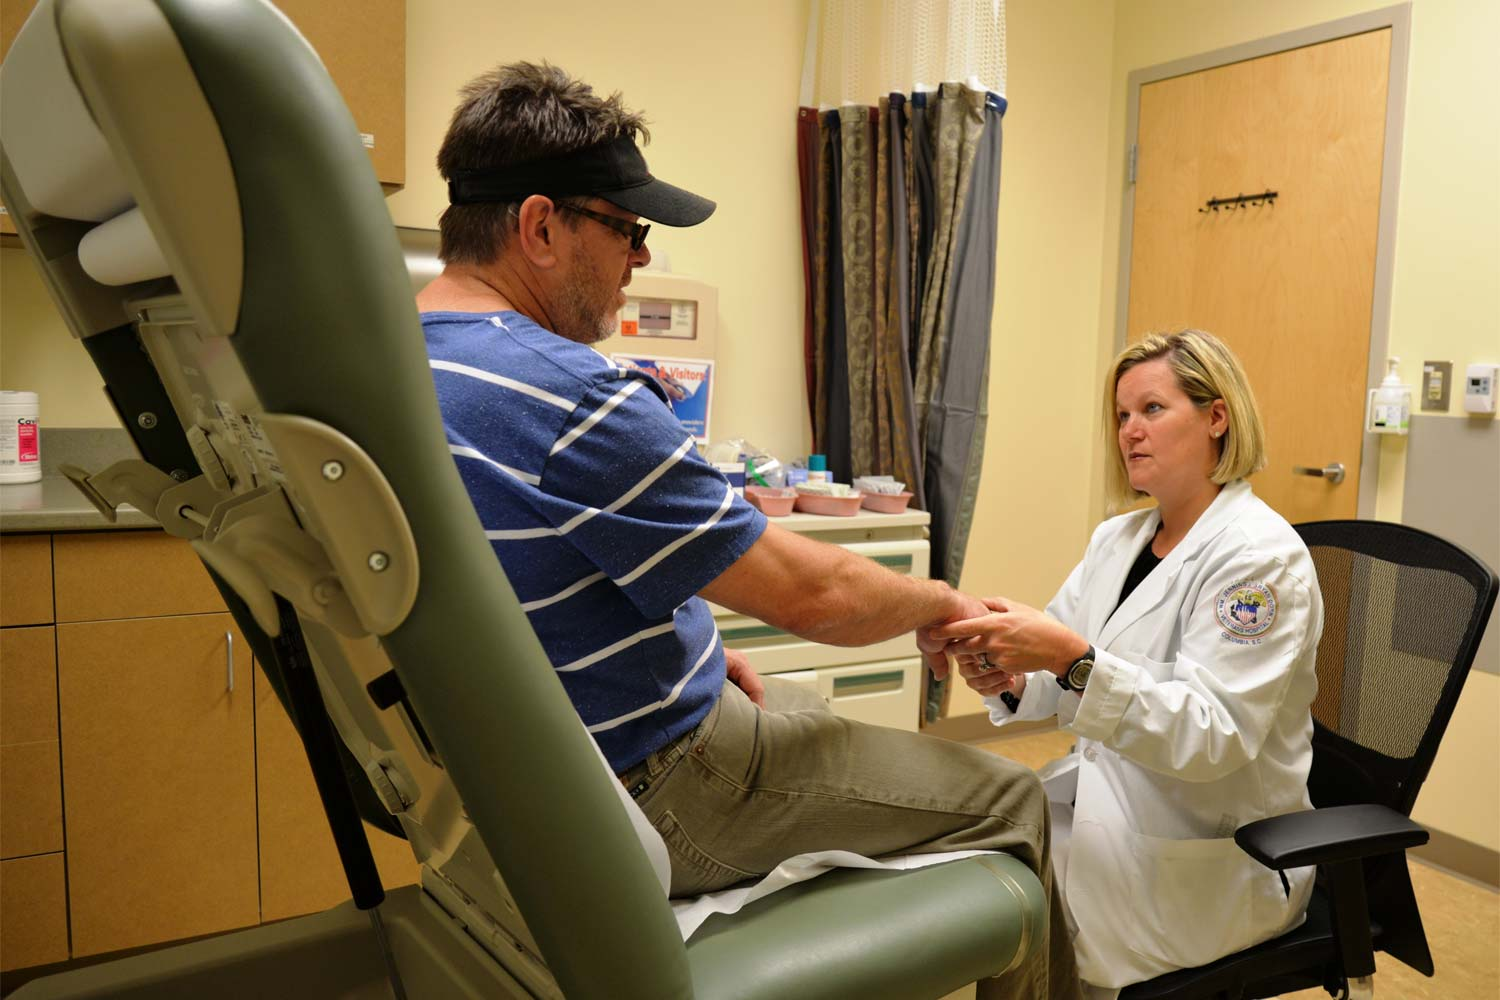 Nurse Practitioners To Treat Vets Without Doctor